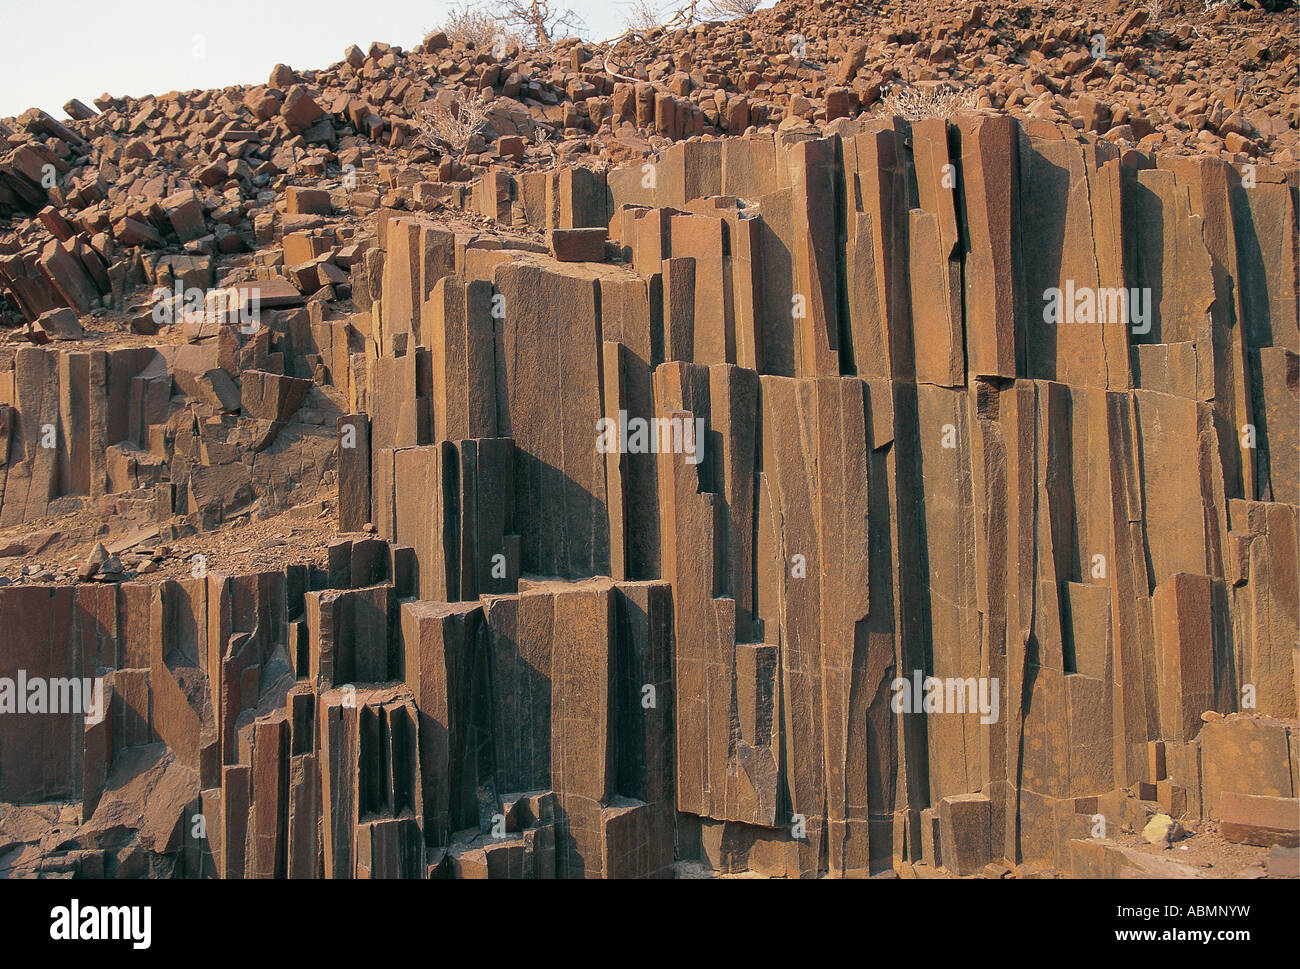 Organ Pipes shale rock formation dating back about 120 metres years Twyfelfontein Damaraland Namibia - Stock Image